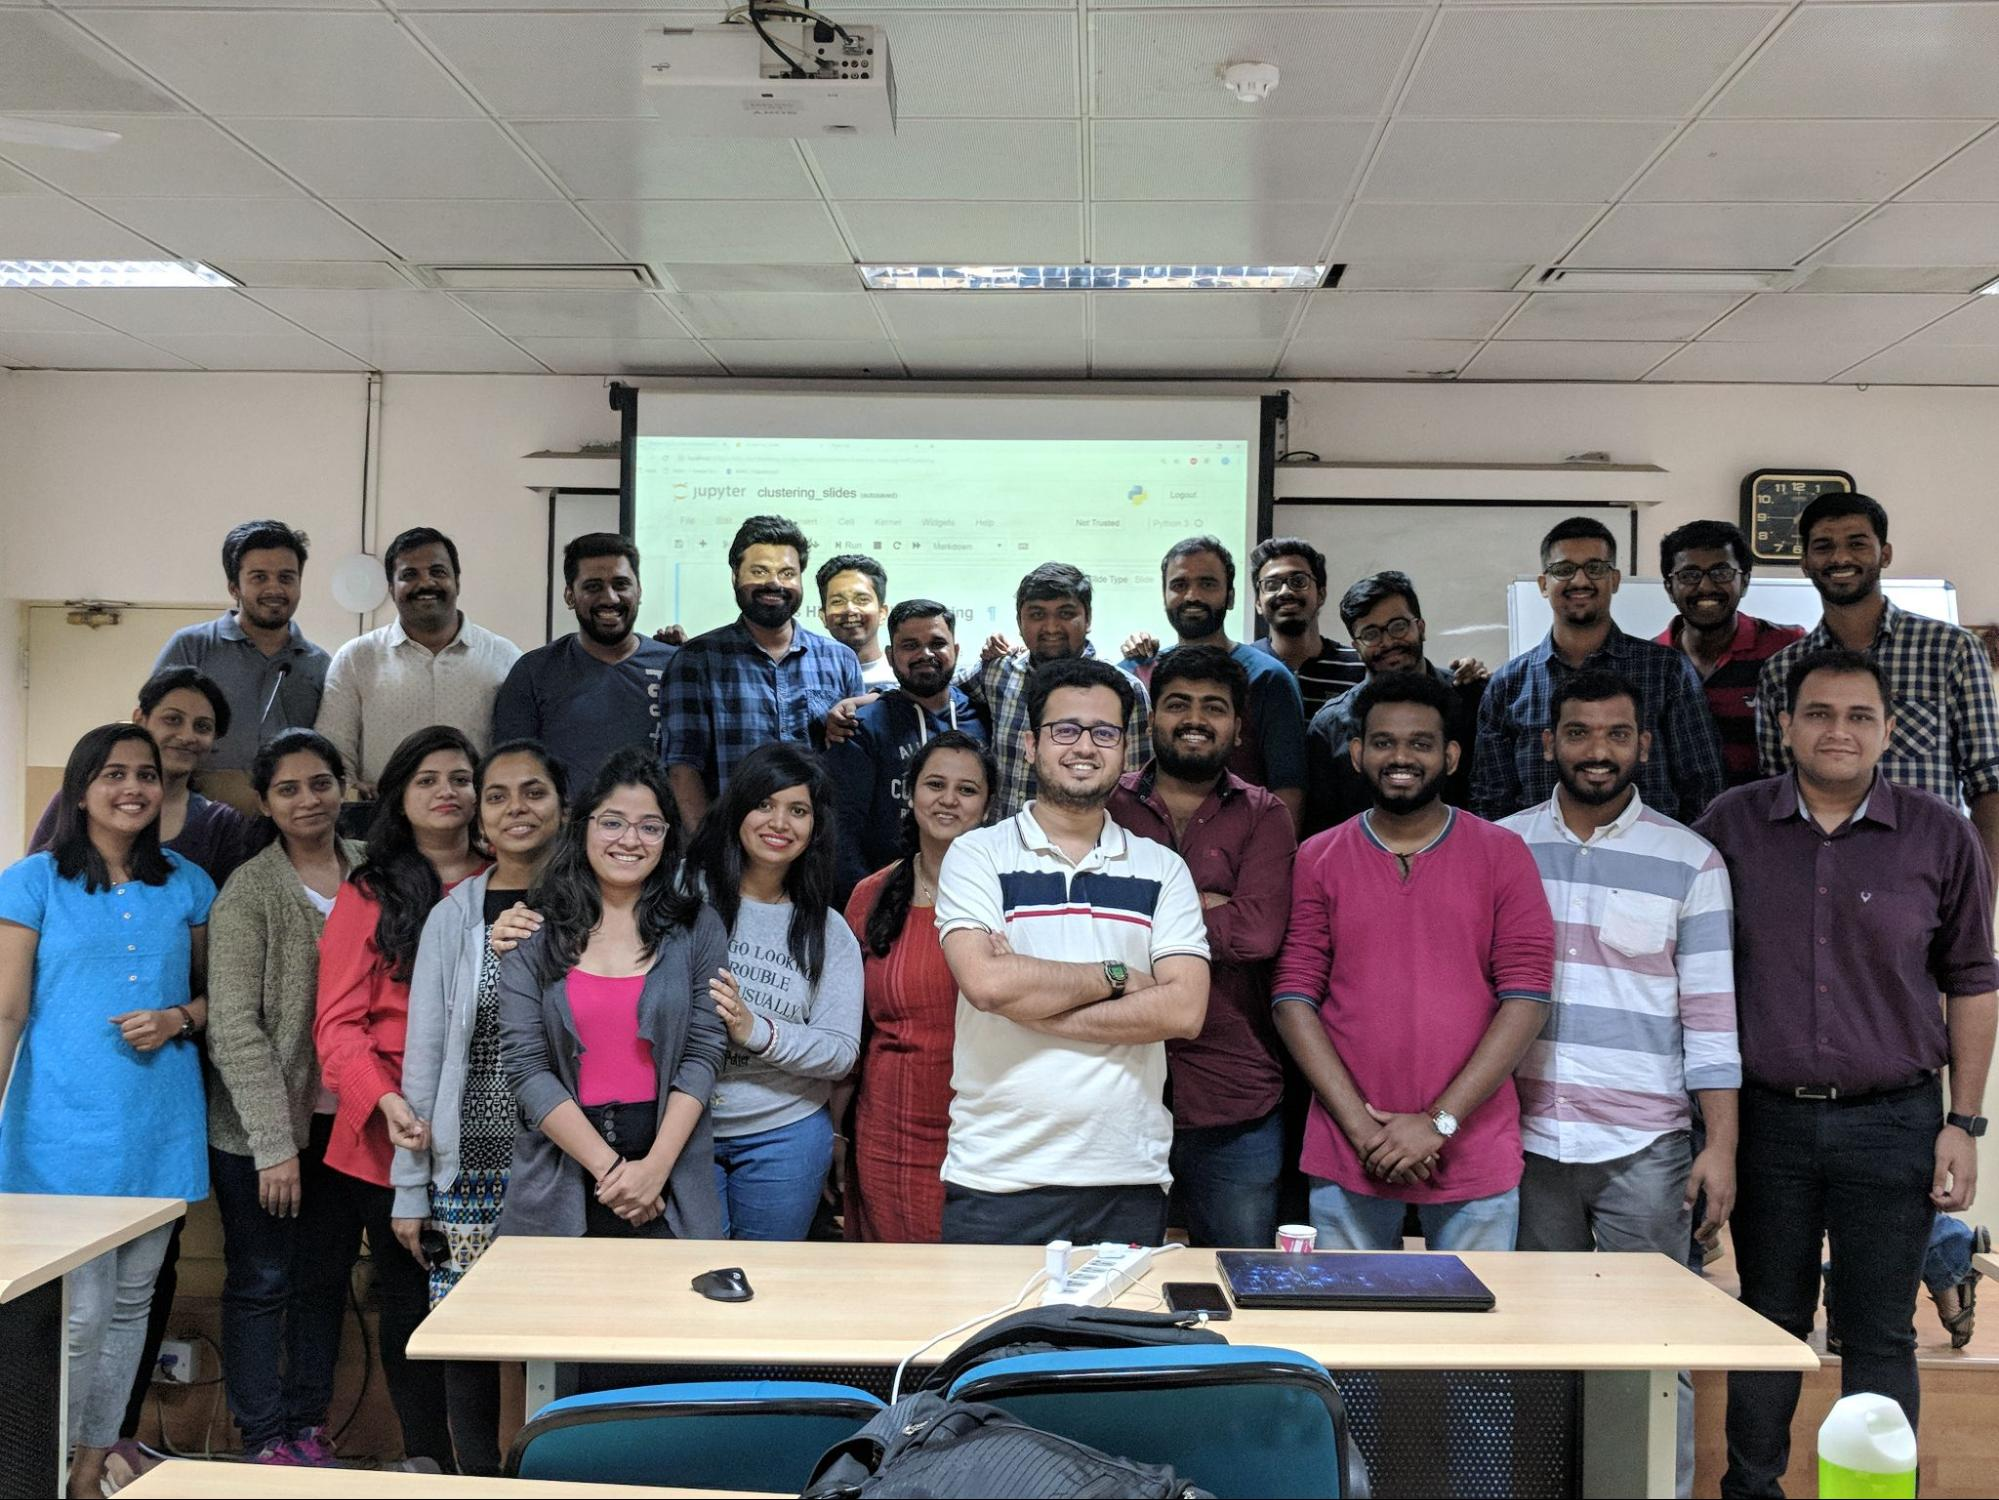 Image shows Bhavesh Bhatt standing in the center of a group of people standing in a classroom and smiling for the camera